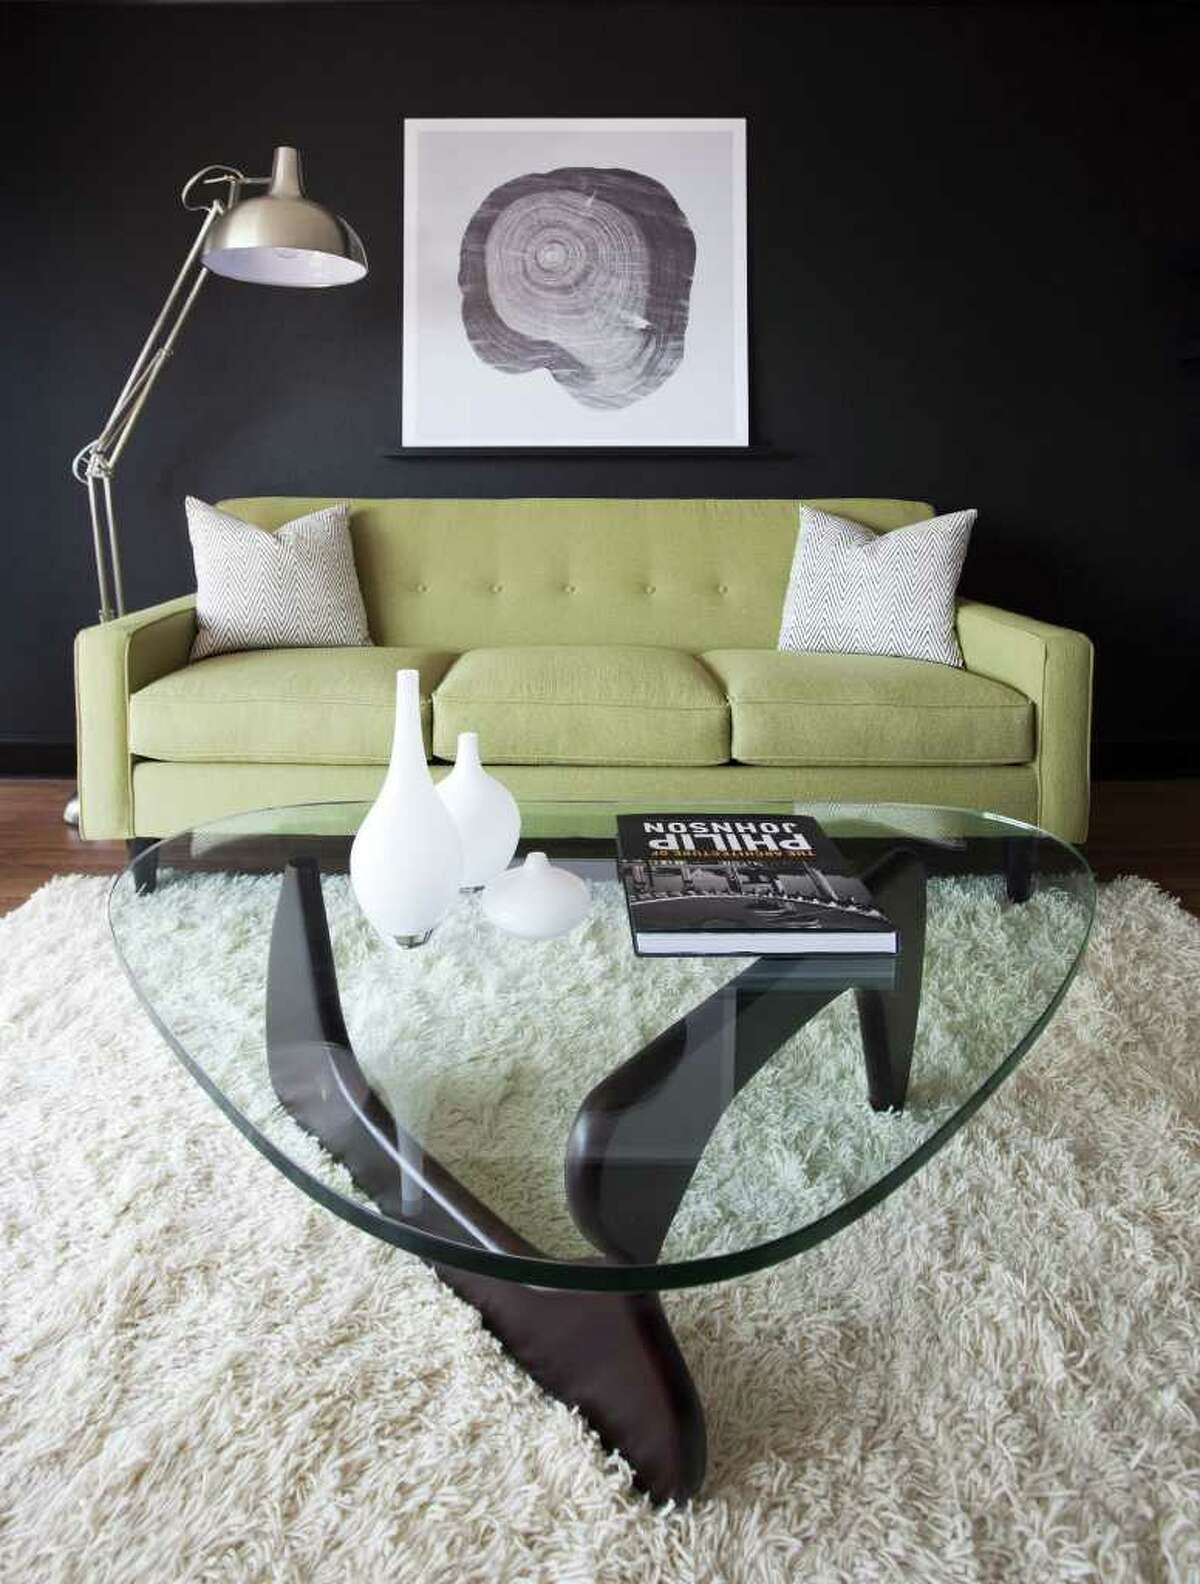 CREATING CONTRAST: For his model unit at Houston House, designer Chris Nguyen painted one of the walls black and placed a clean-lined, modern chartreuse sofa in front of the wall in the living room. The contrast is further accentuated by a high-pile, white shag rug and black and white patterned pillows.